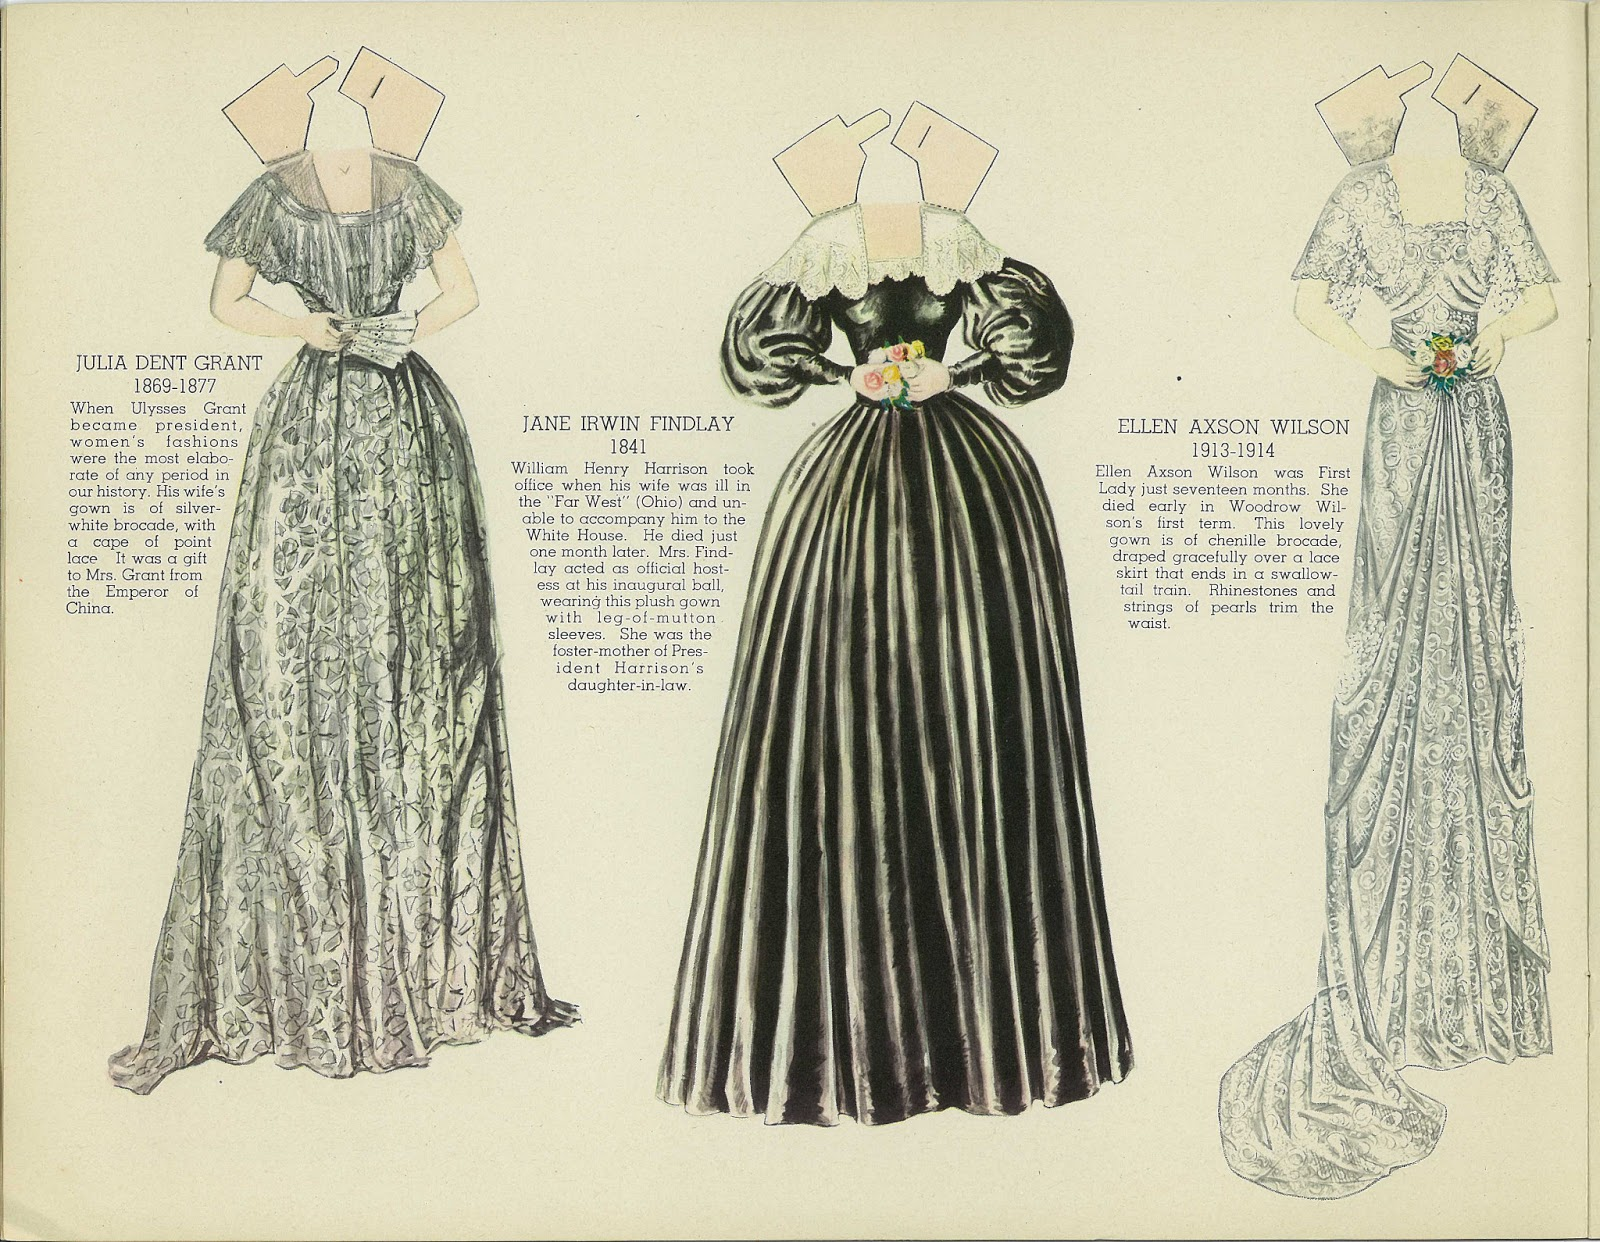 Miss Missy Paper Dolls: Dresses worn by the First Ladies of the ...